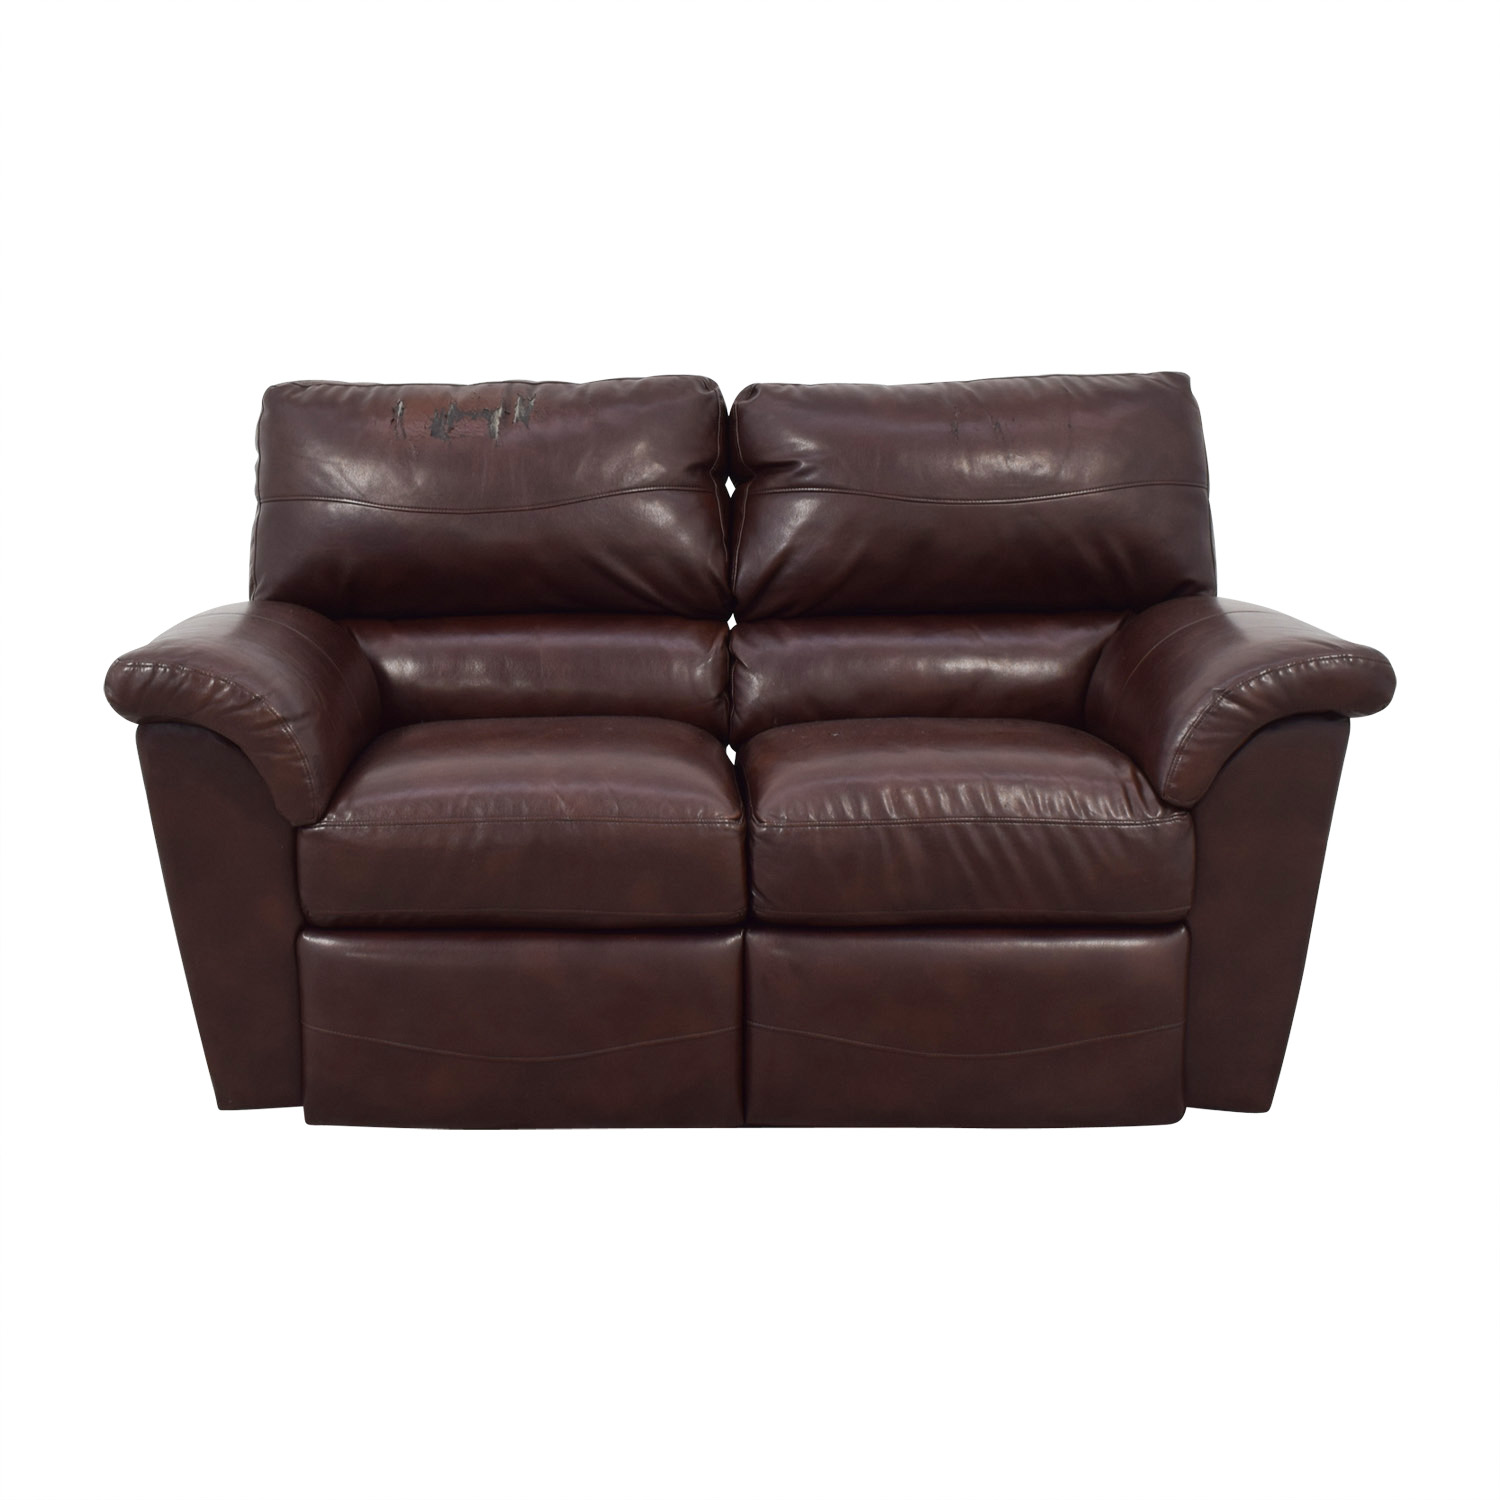 La-Z-Boy Oscar Reclining Loveseat sale